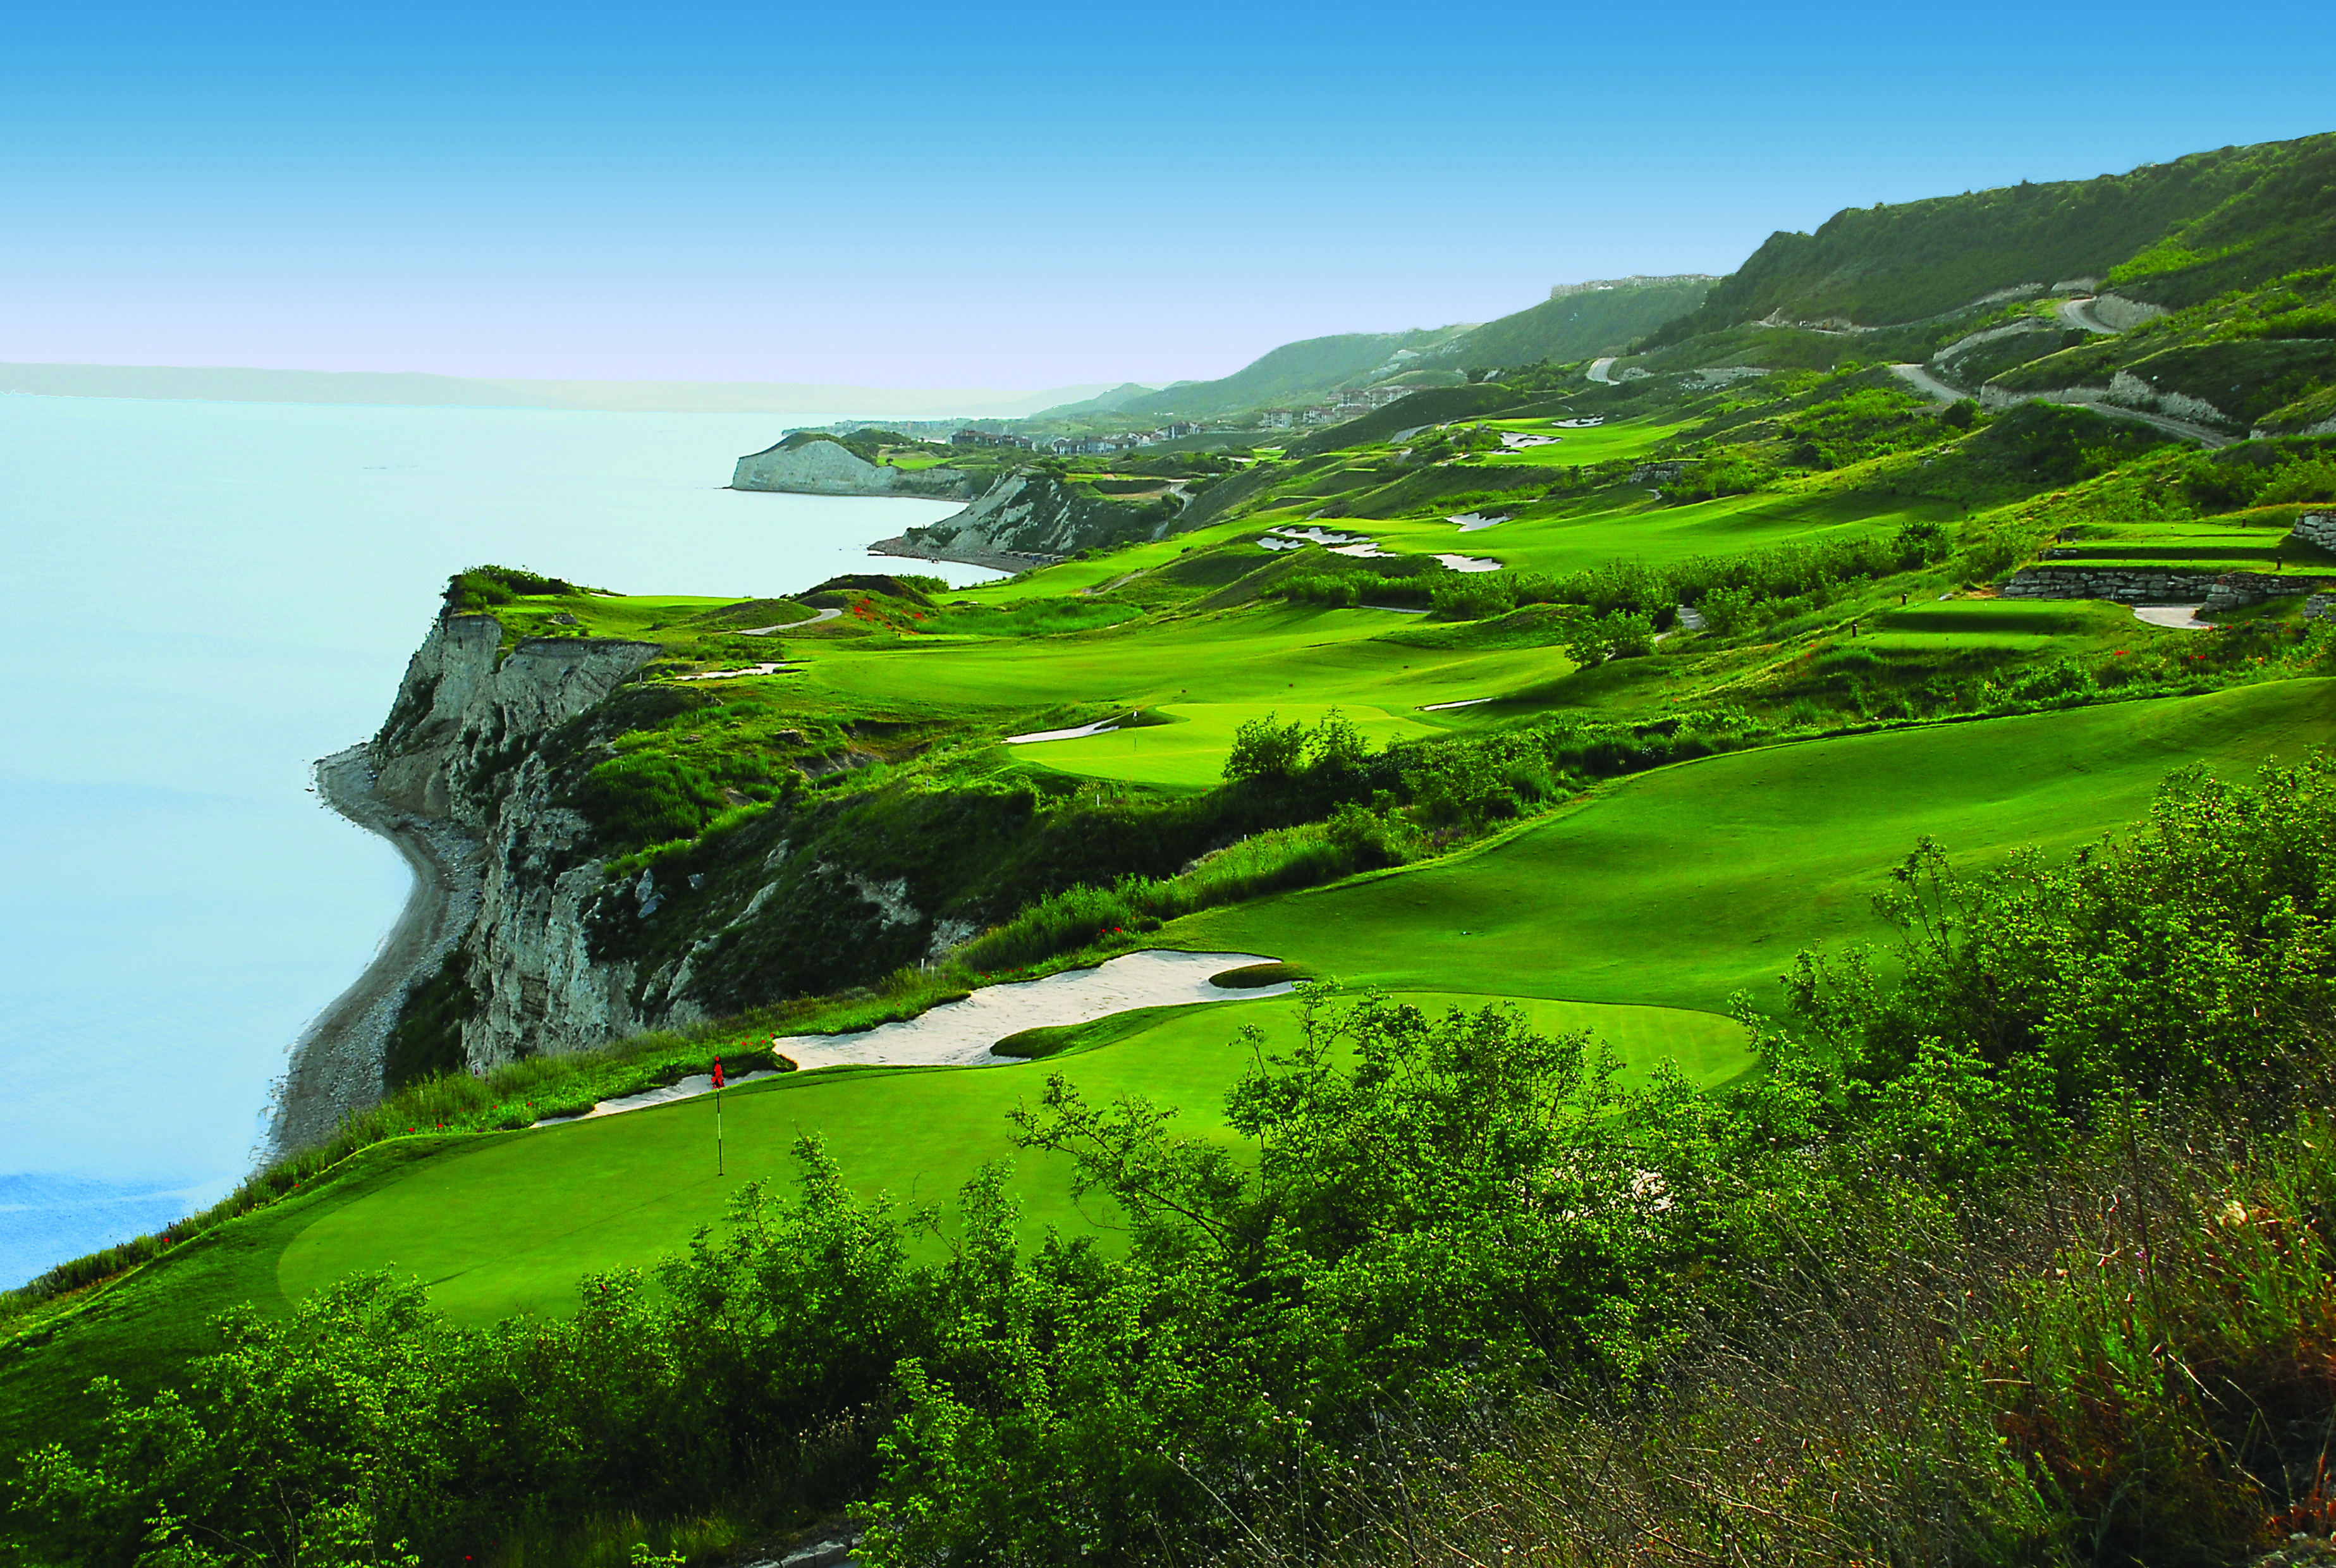 Thracian Cliffs - Bulgarije